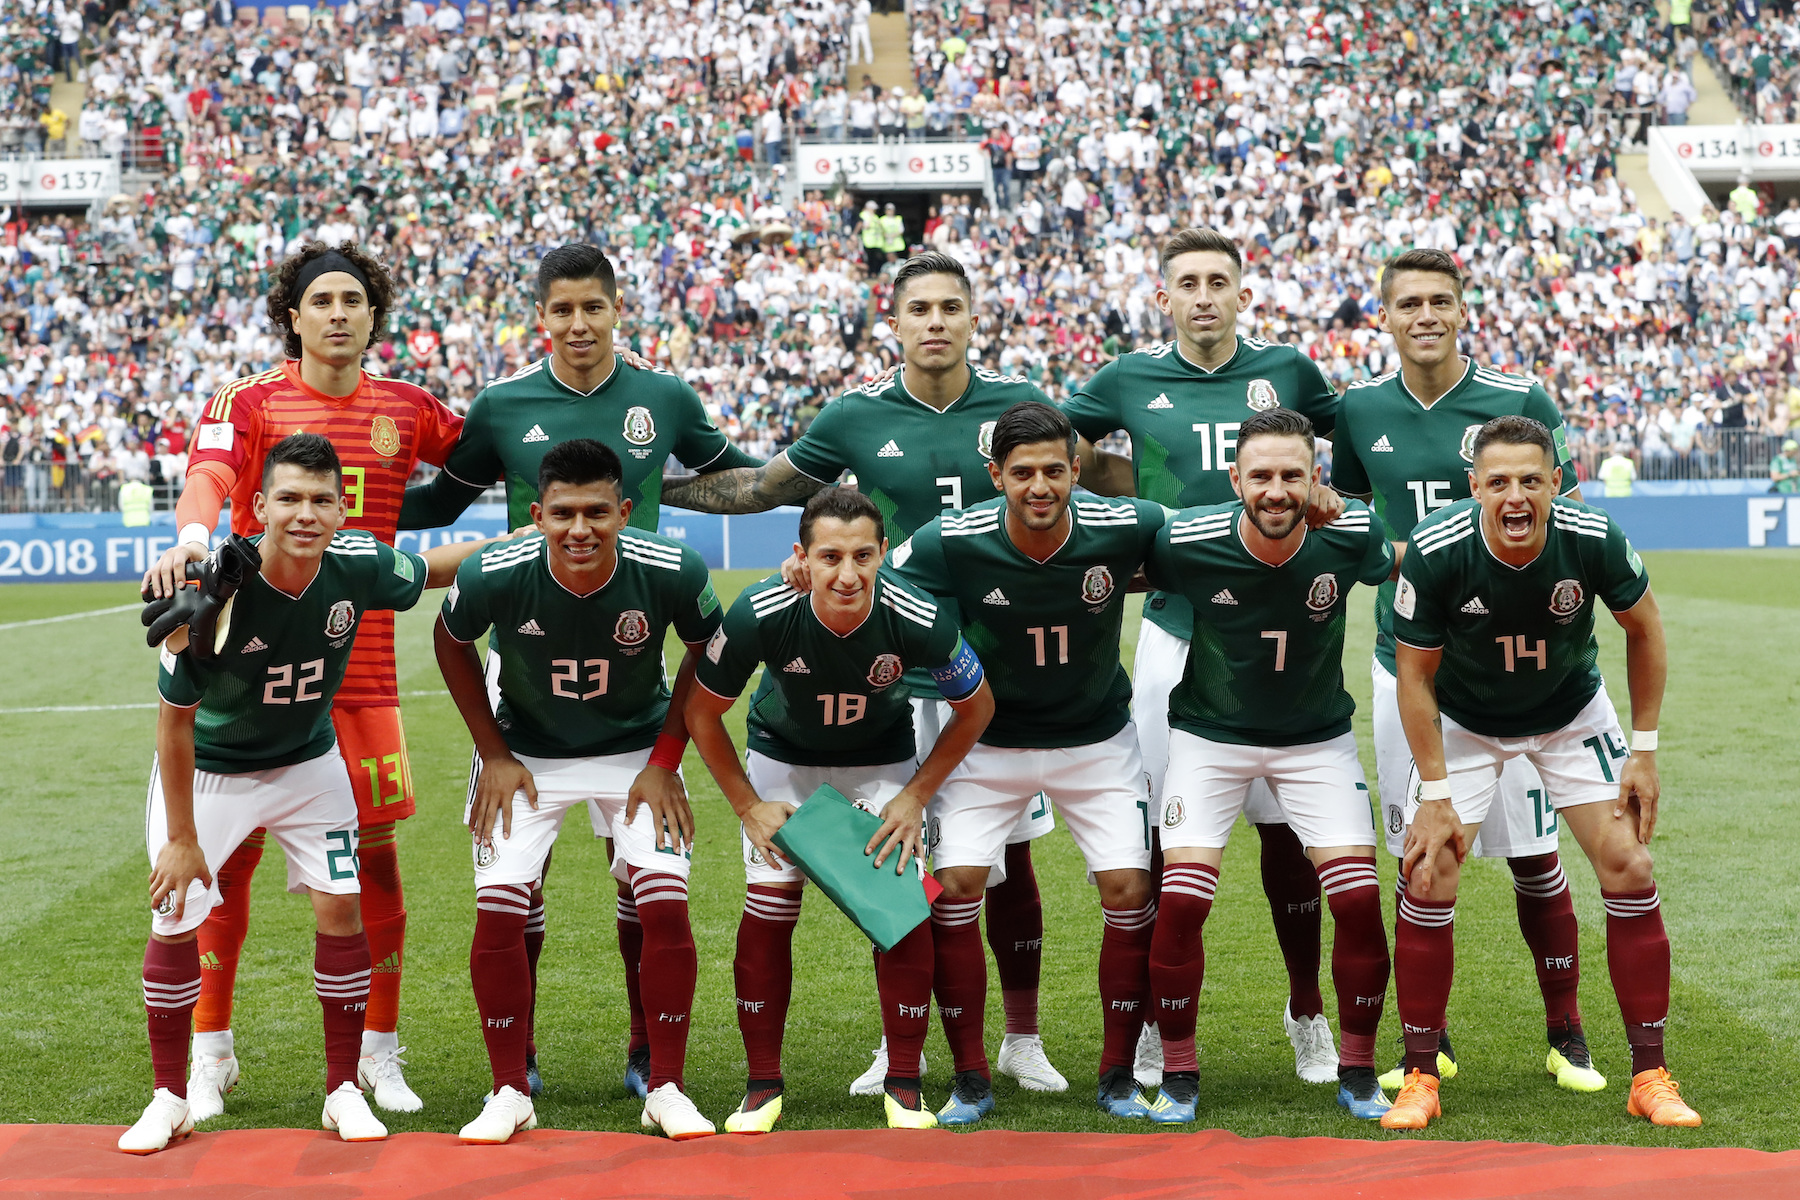 <div class='meta'><div class='origin-logo' data-origin='AP'></div><span class='caption-text' data-credit='AP Photo/Antonio Calanni'>Mexico team players pose prior to the start of the group F match between Germany and Mexico at the 2018 soccer World Cup in the Luzhniki Stadium in Moscow, Russia.</span></div>